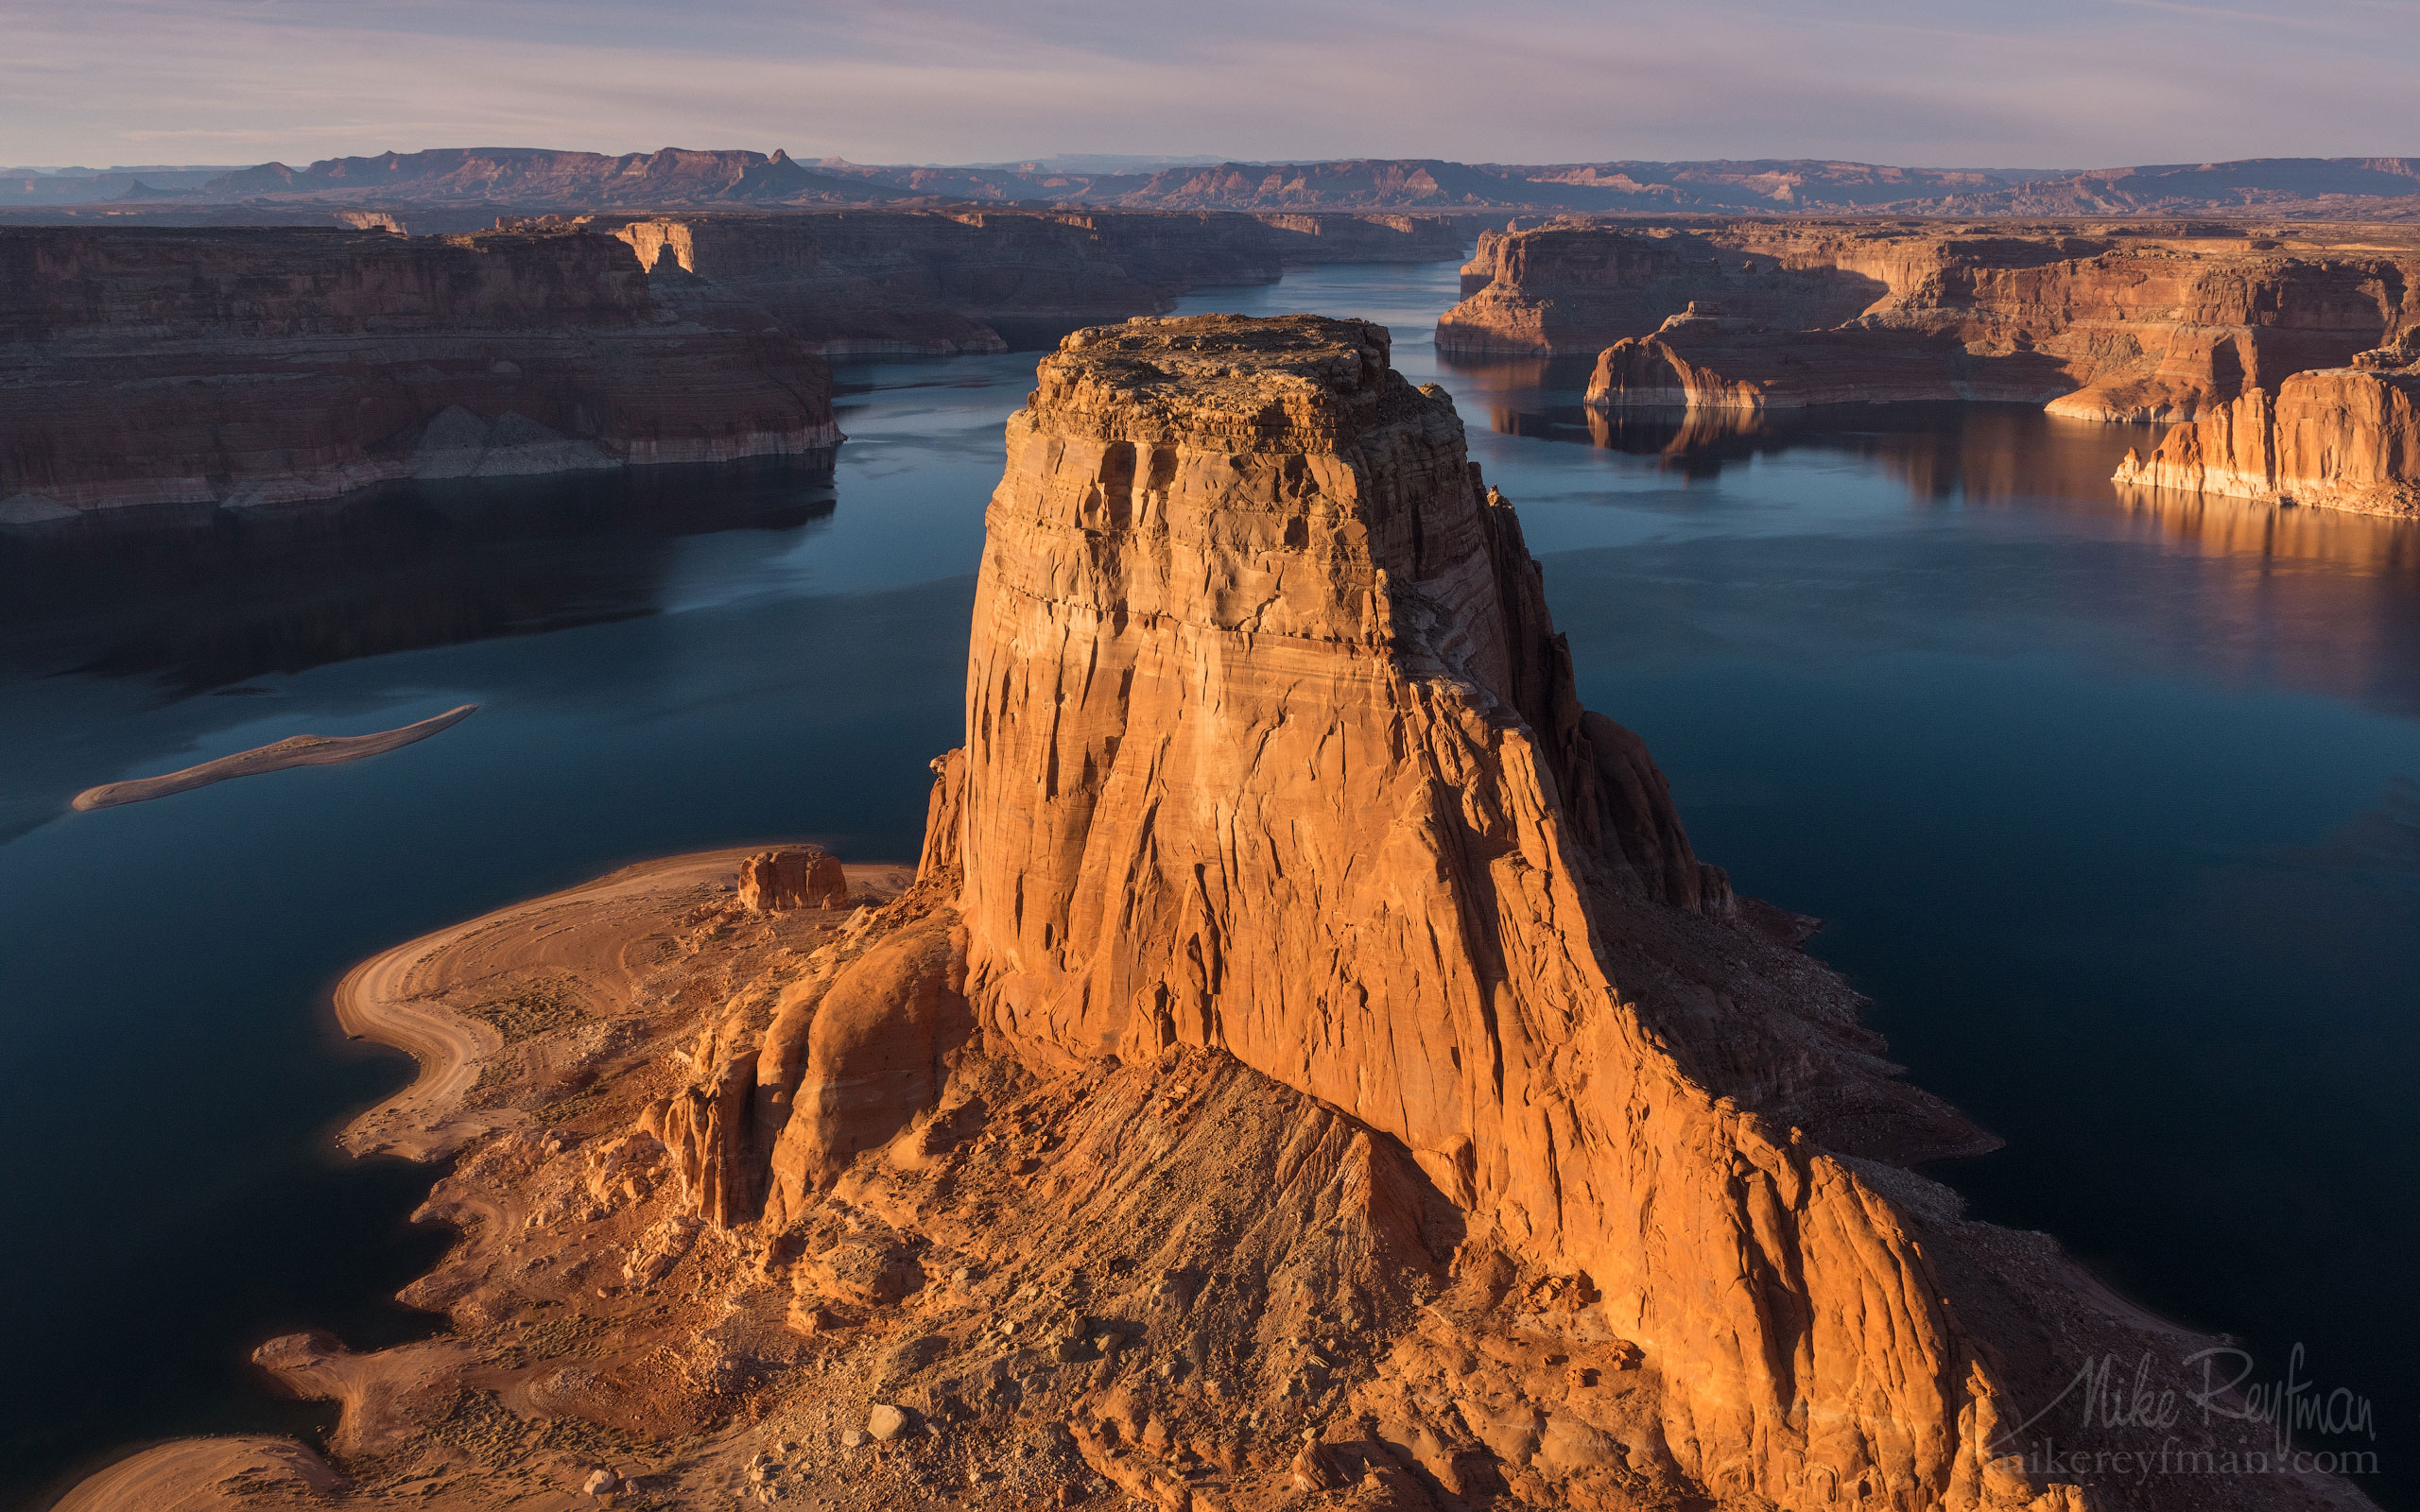 Gregory Butte. Lake Powell, Glen Canyon NRA, Utah/Arizona, USA. Aerial. 034-LP3_D1B9999_251.jpg - Lake Powell, Glen Canyon NAR. Colorado and Sun Juan Rivers. Utah/Arizona, USA  - Mike Reyfman Photography